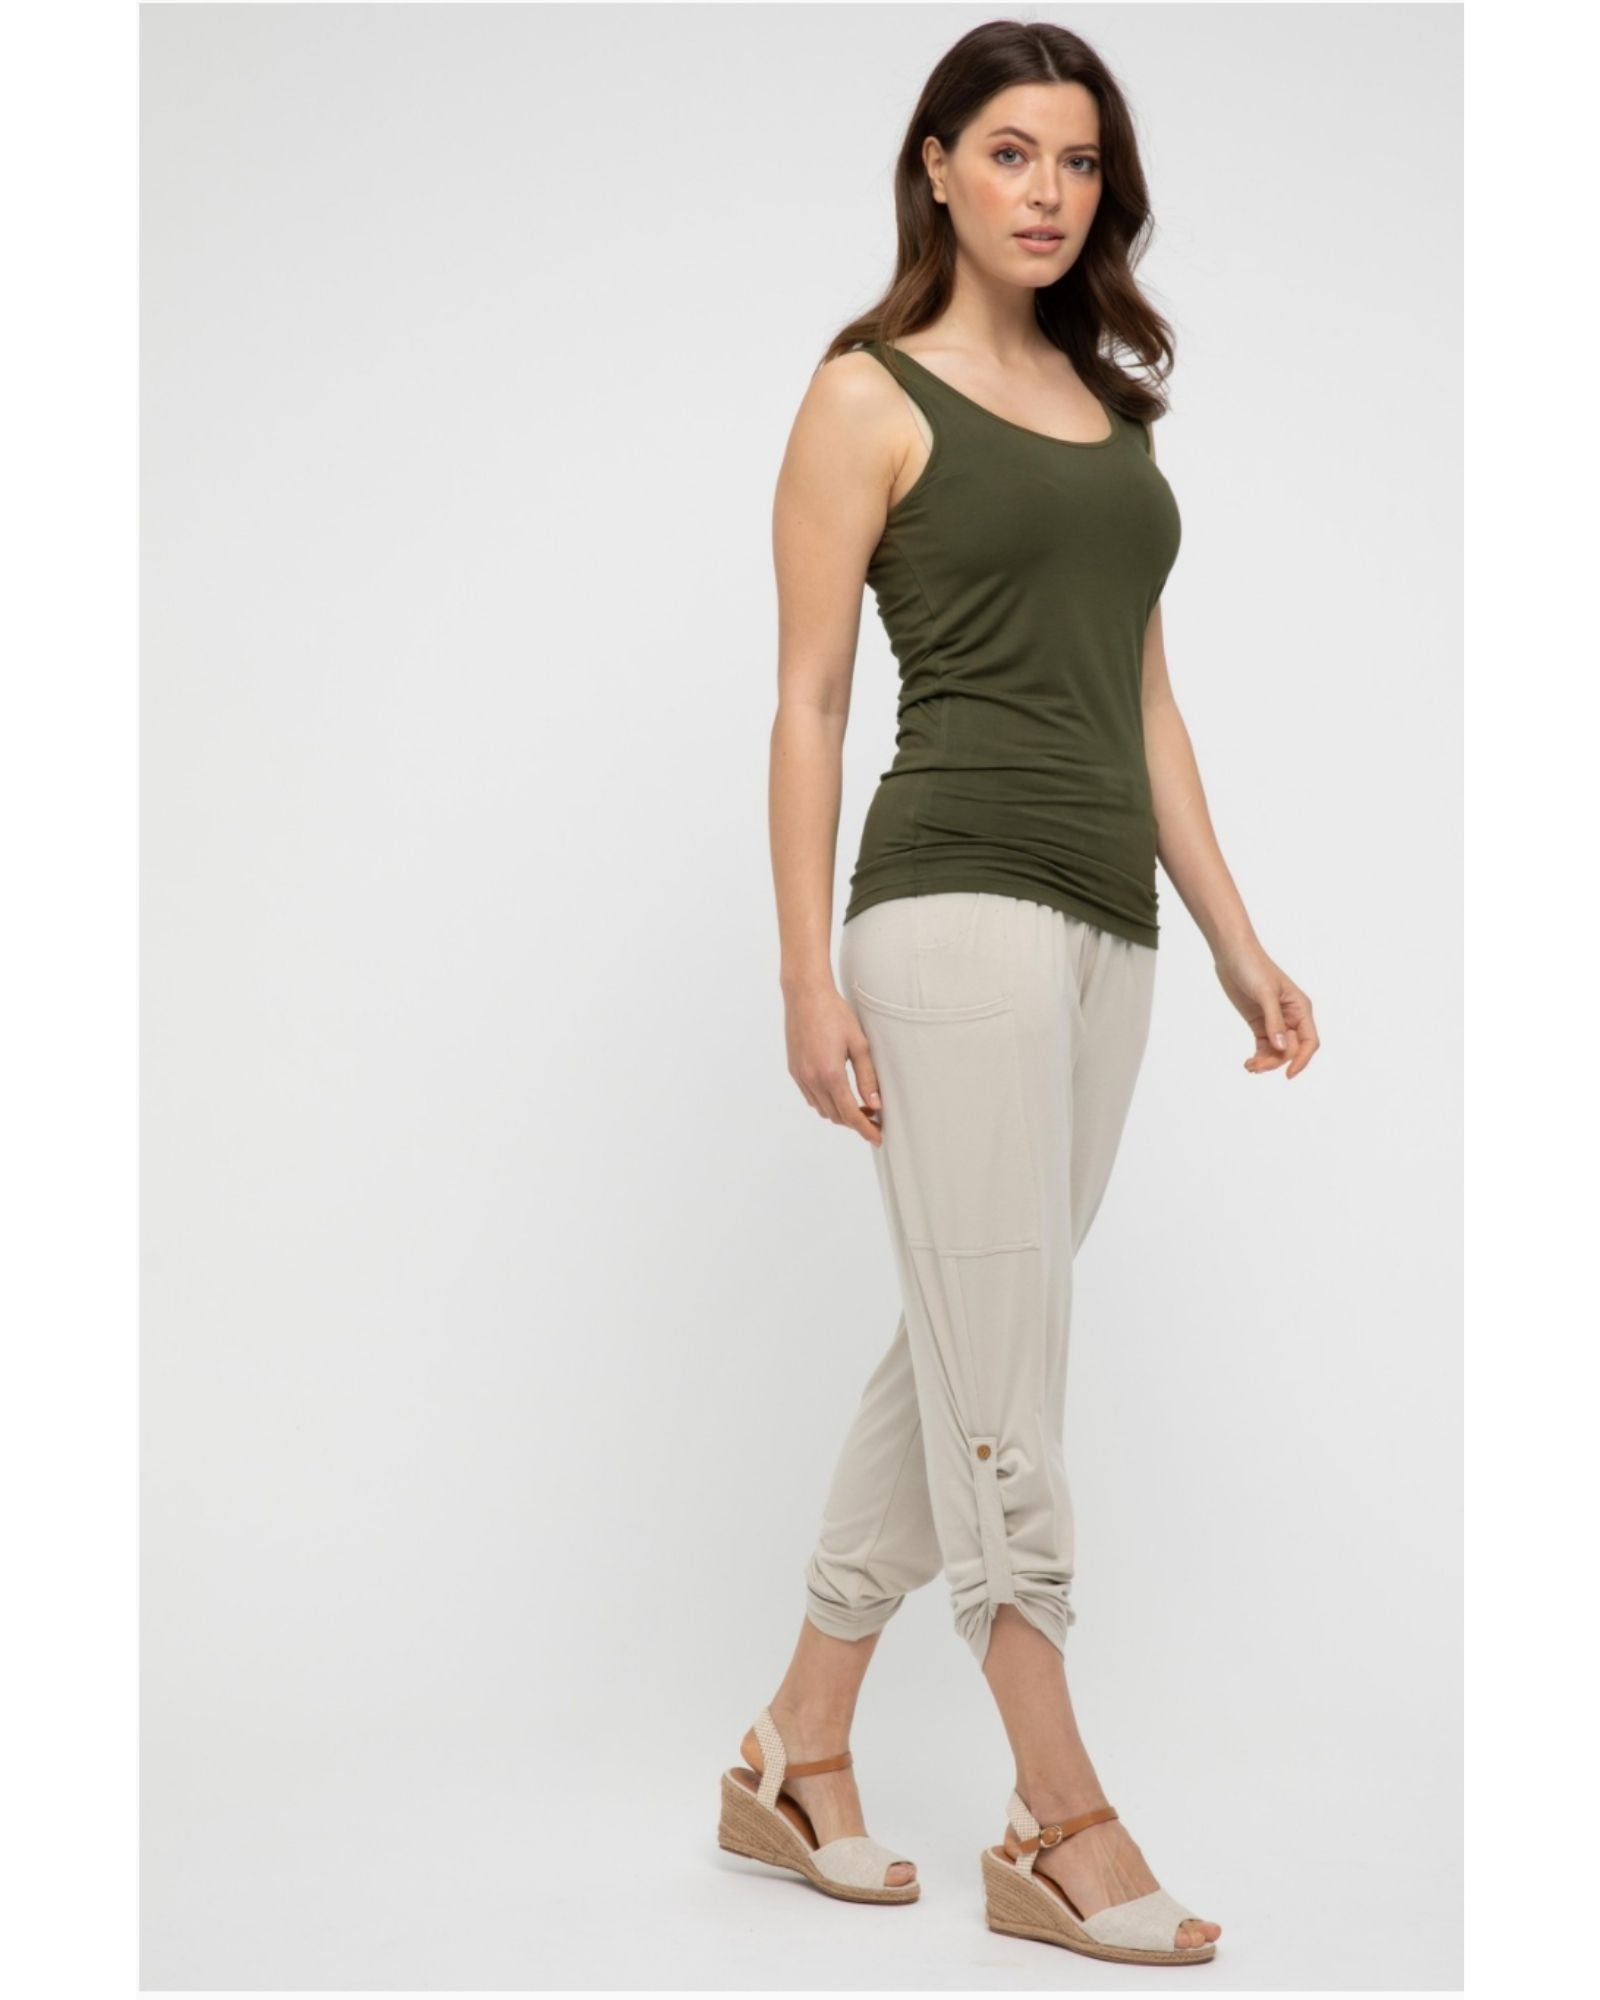 Bamboo Vest - Olive -Size 10-22